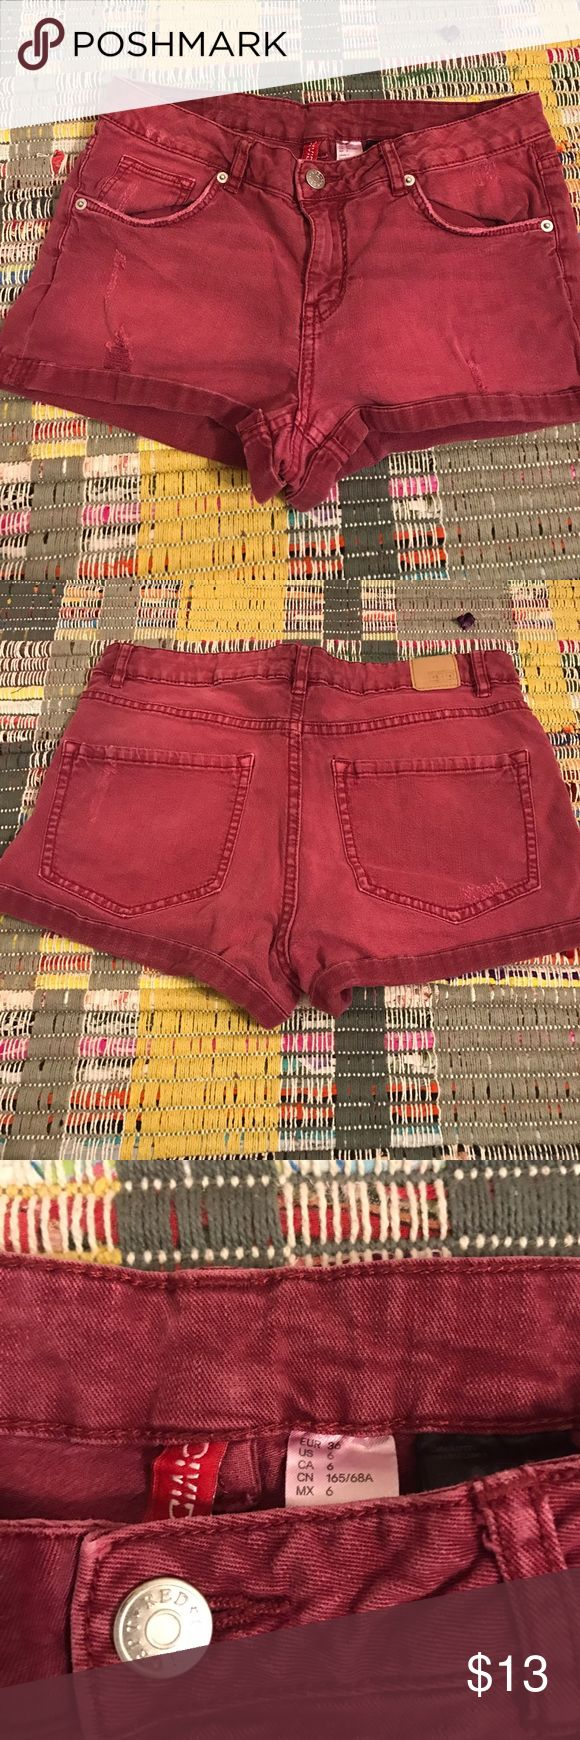 H&M maroon shorts Short shorts with distressed detailing. Worn but in good condition H&M Shorts Jean Shorts